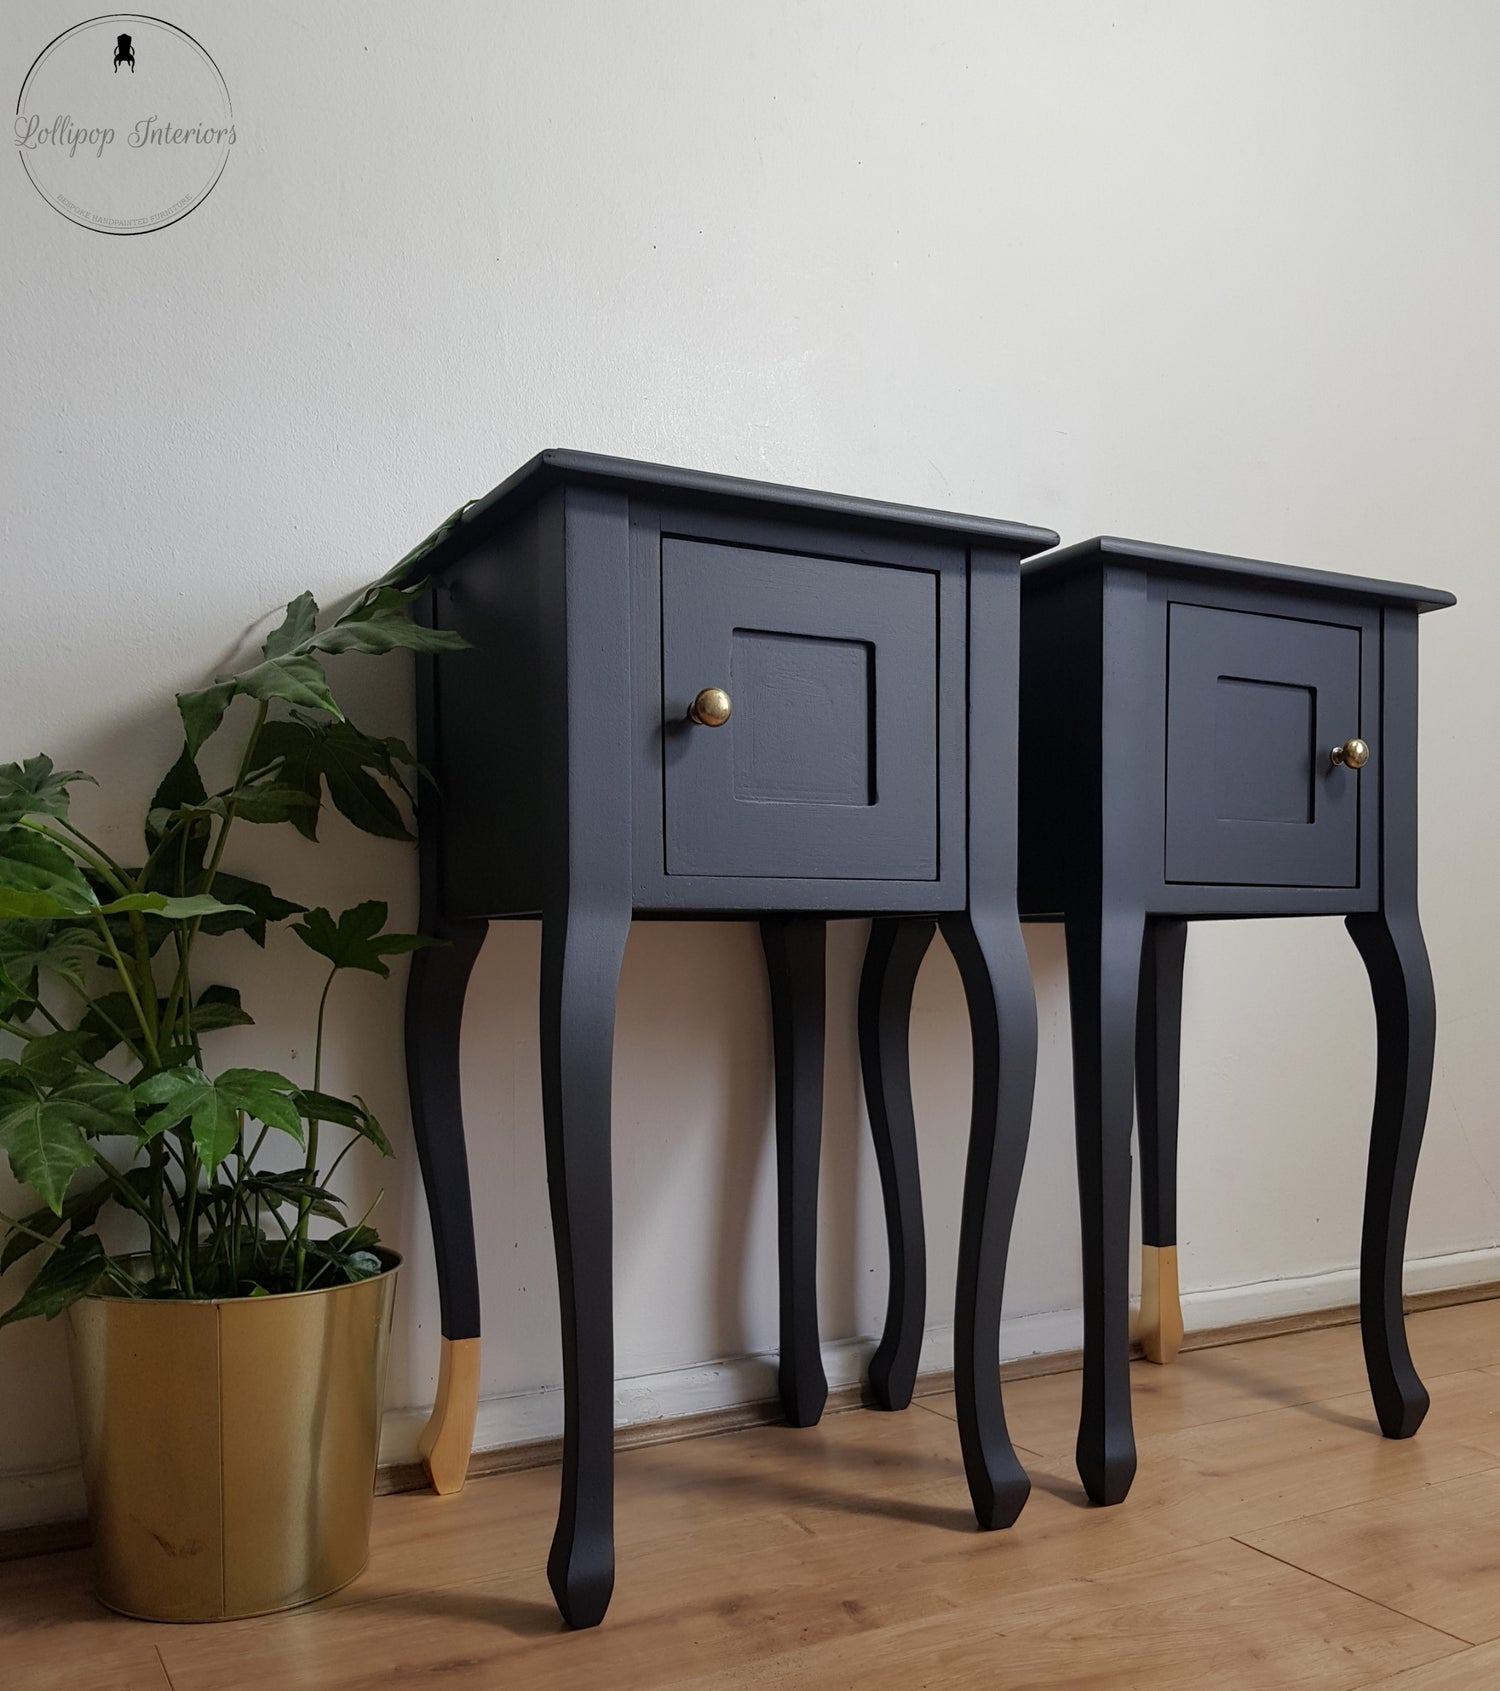 Image of Laura Ashley dark grey and gold bedside tables